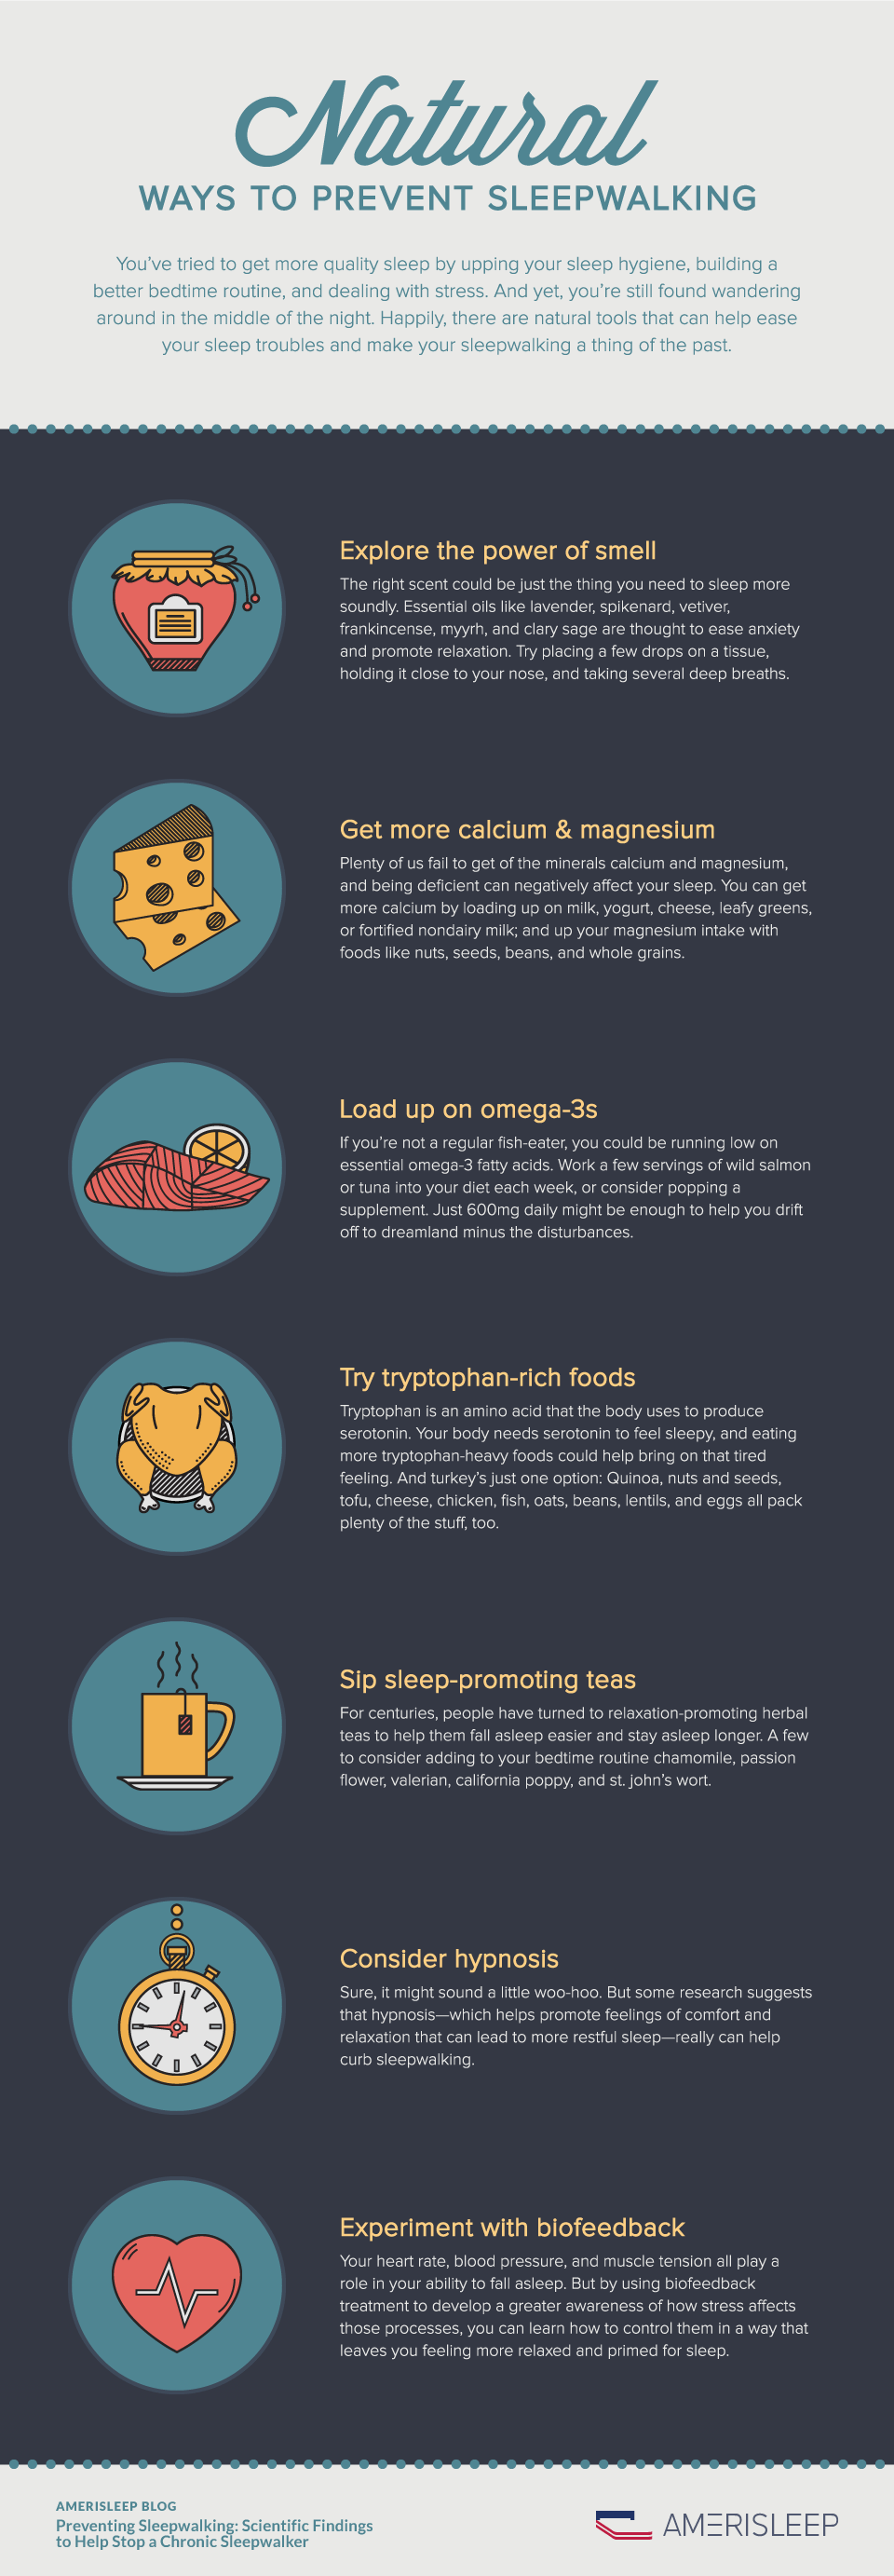 amerisleep-natural-ways-to-prevent-sleepwalking-infographic